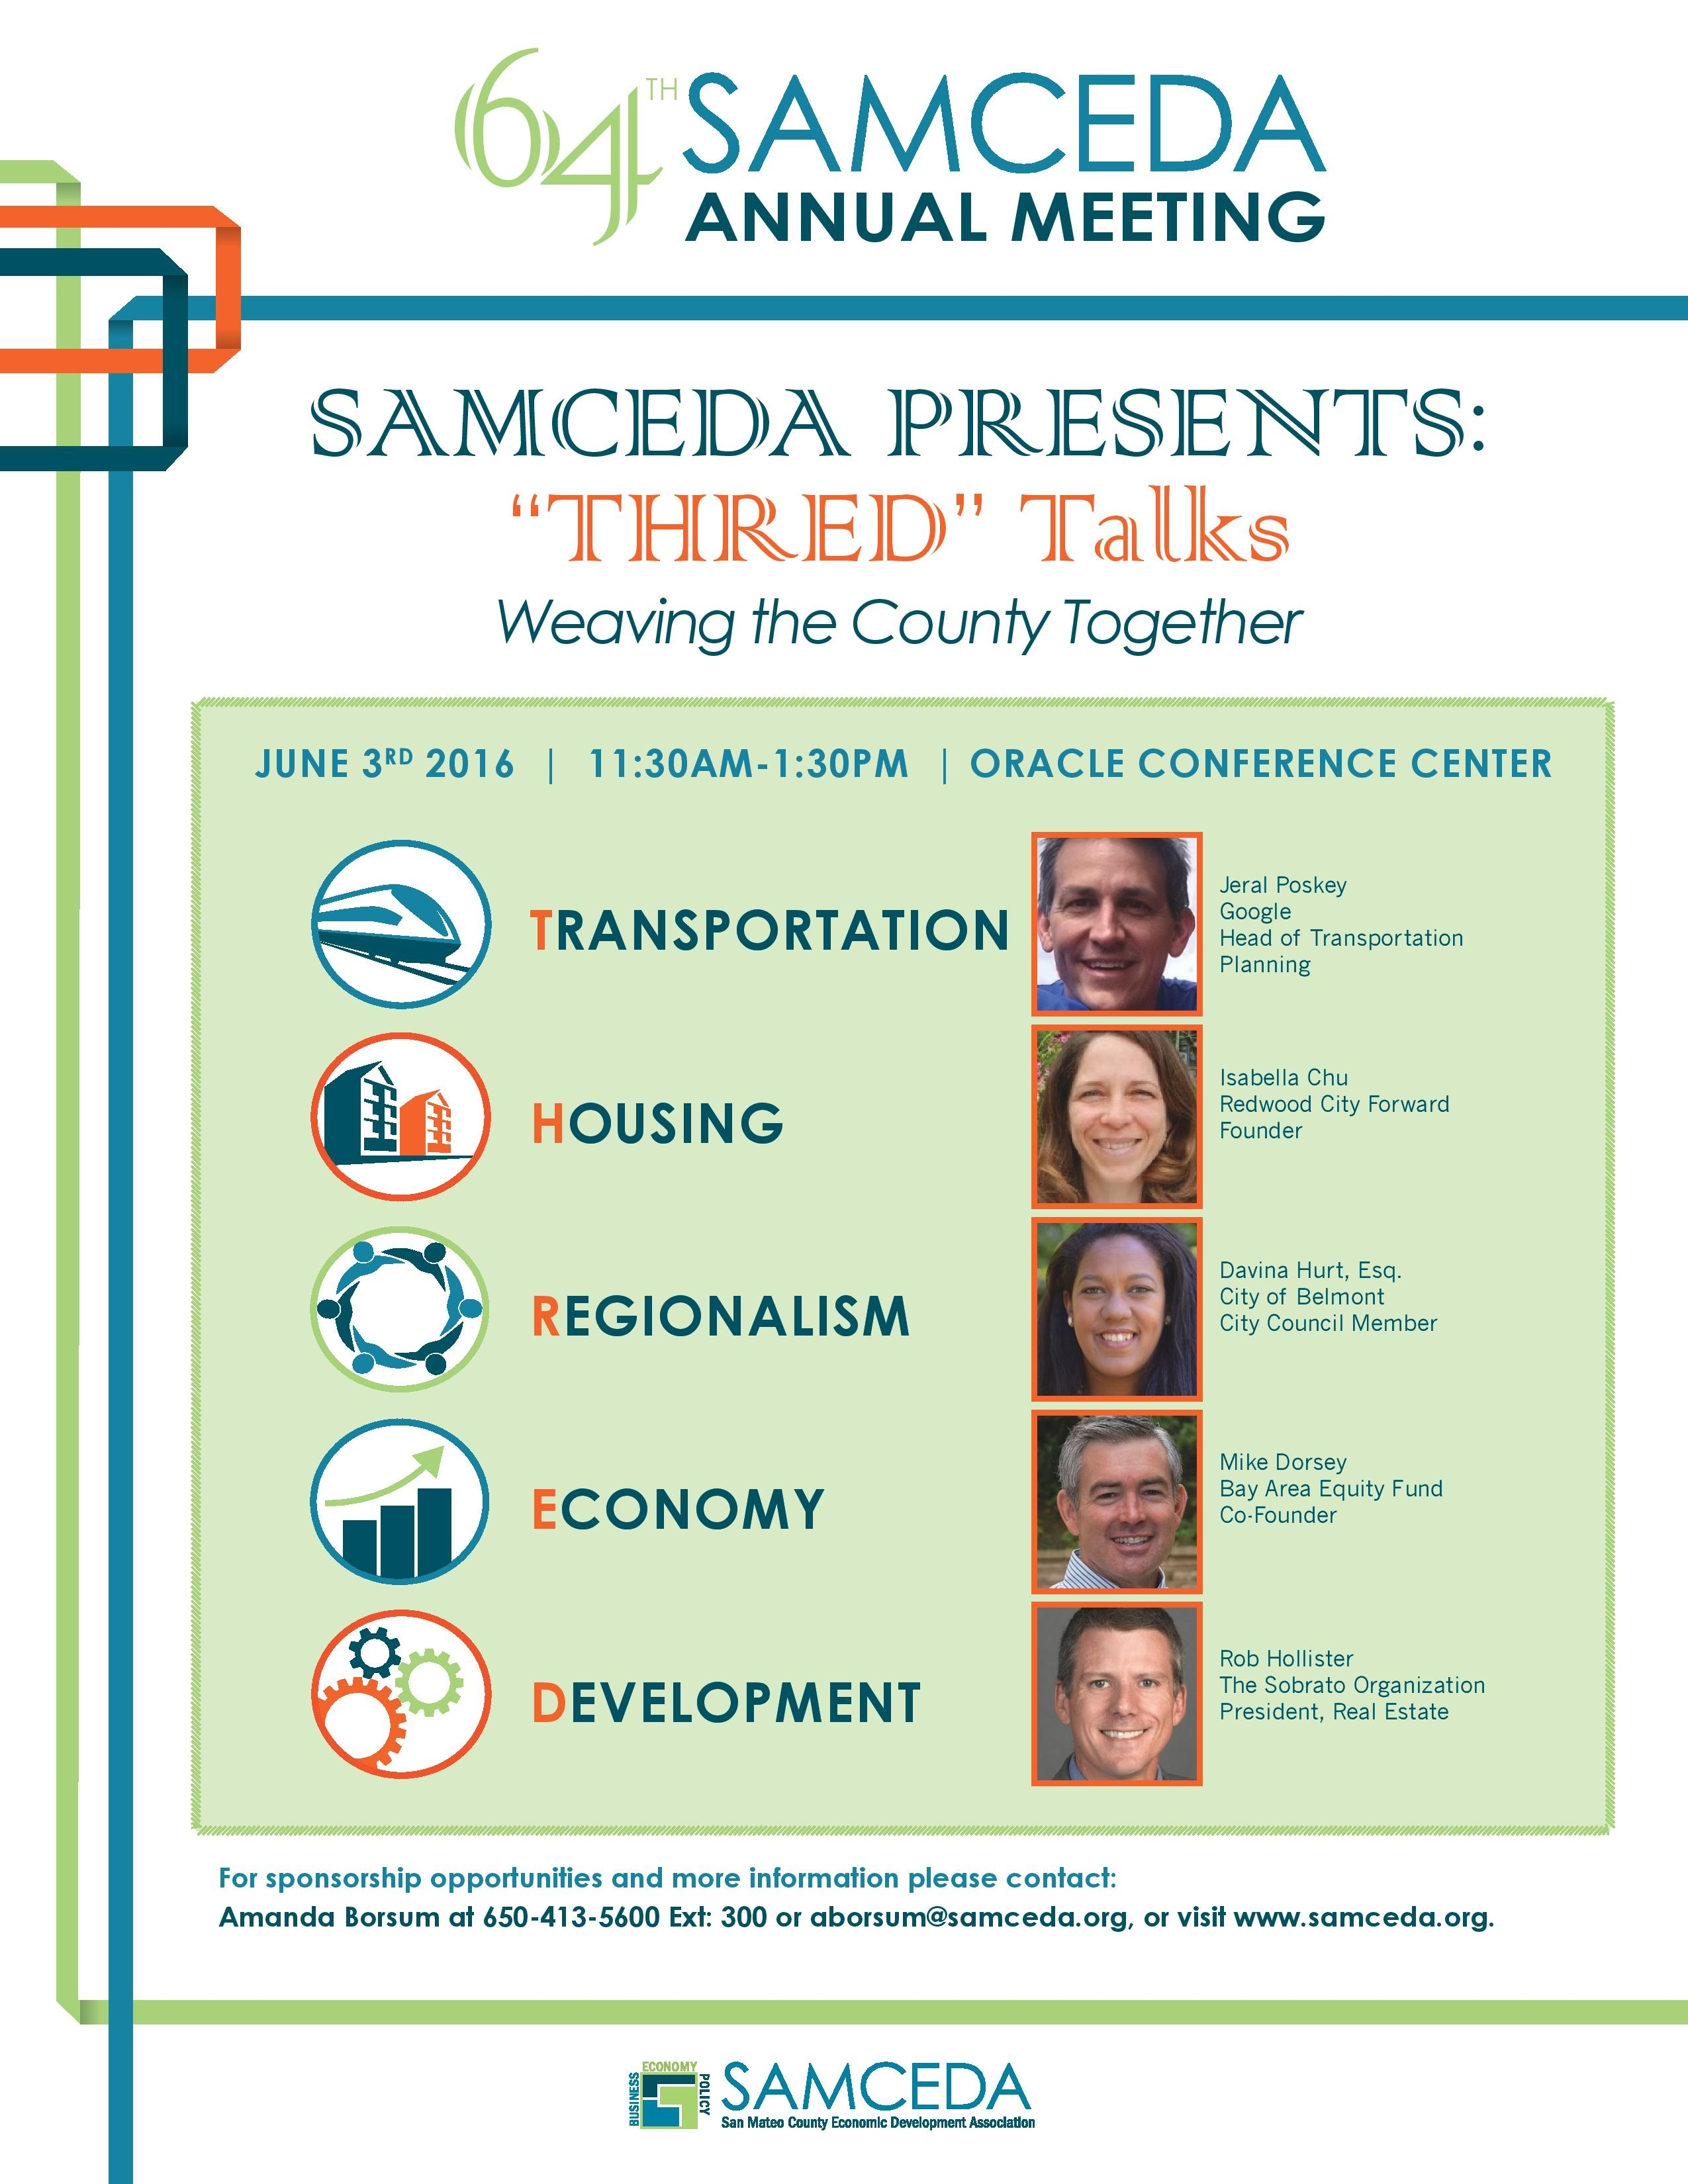 th annual meeting samceda in case you missed the event you can view it here